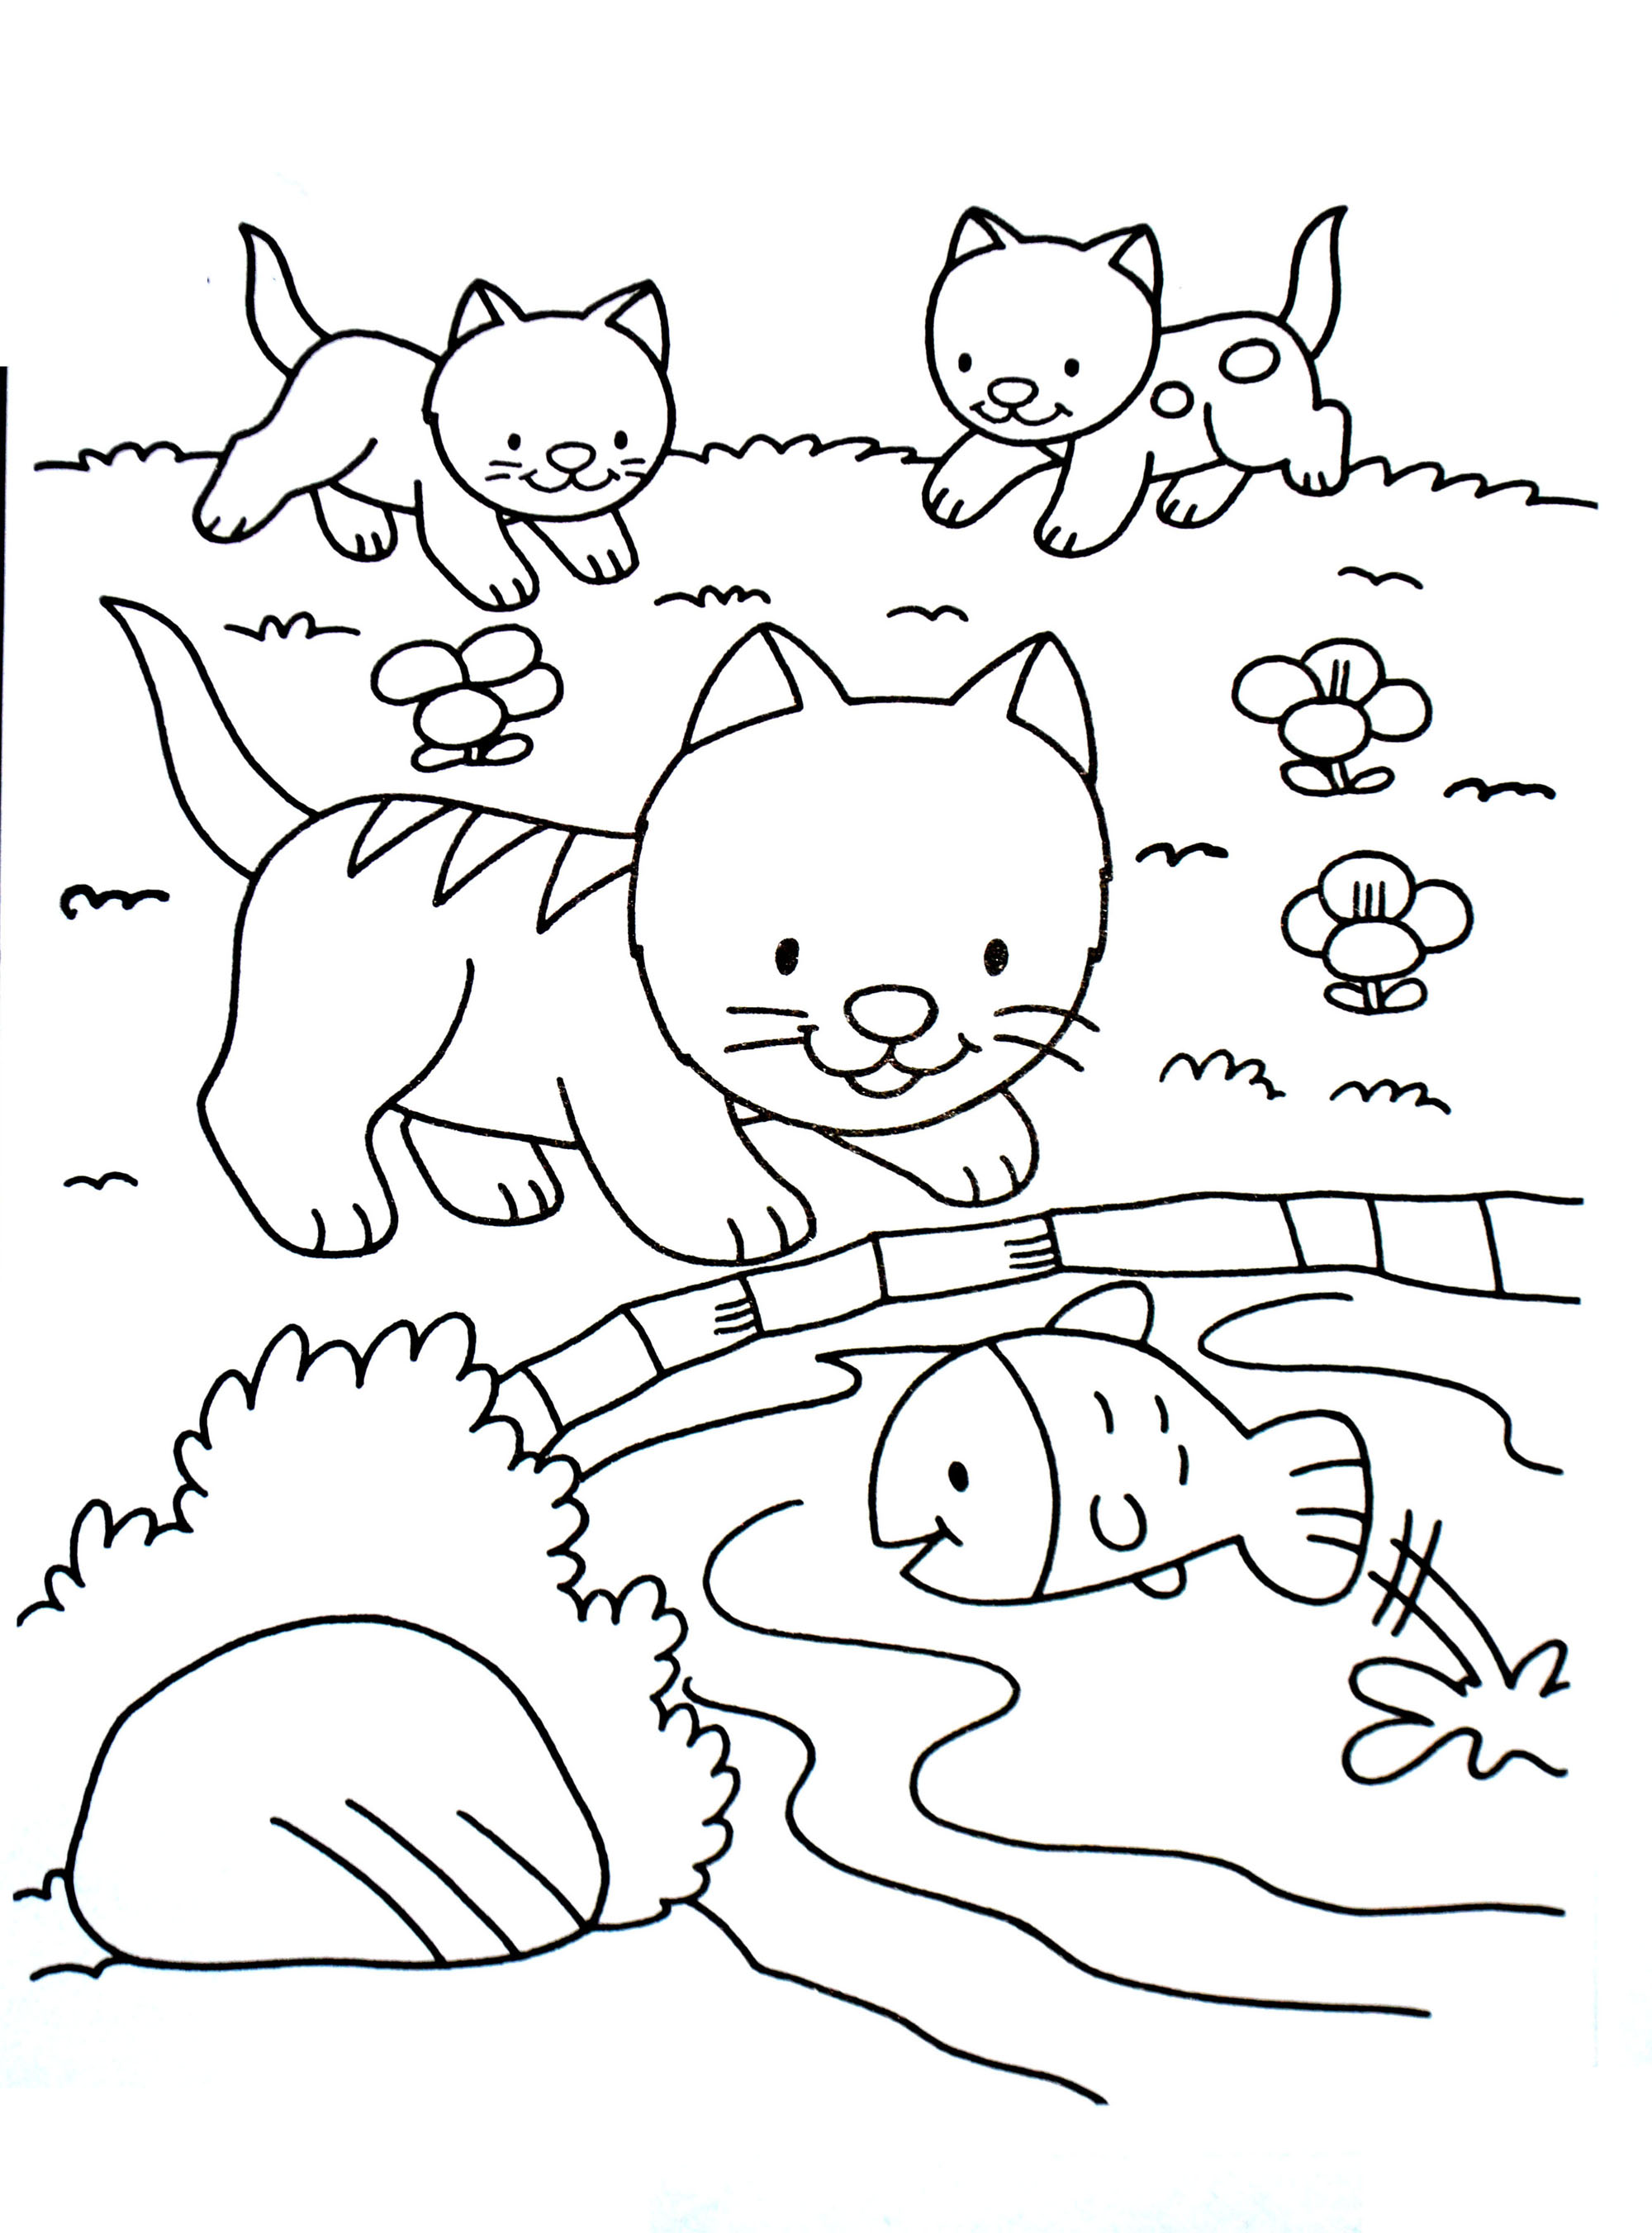 A imprimer chat 1 coloriages de chats coloriages - Coloriage chat a imprimer ...